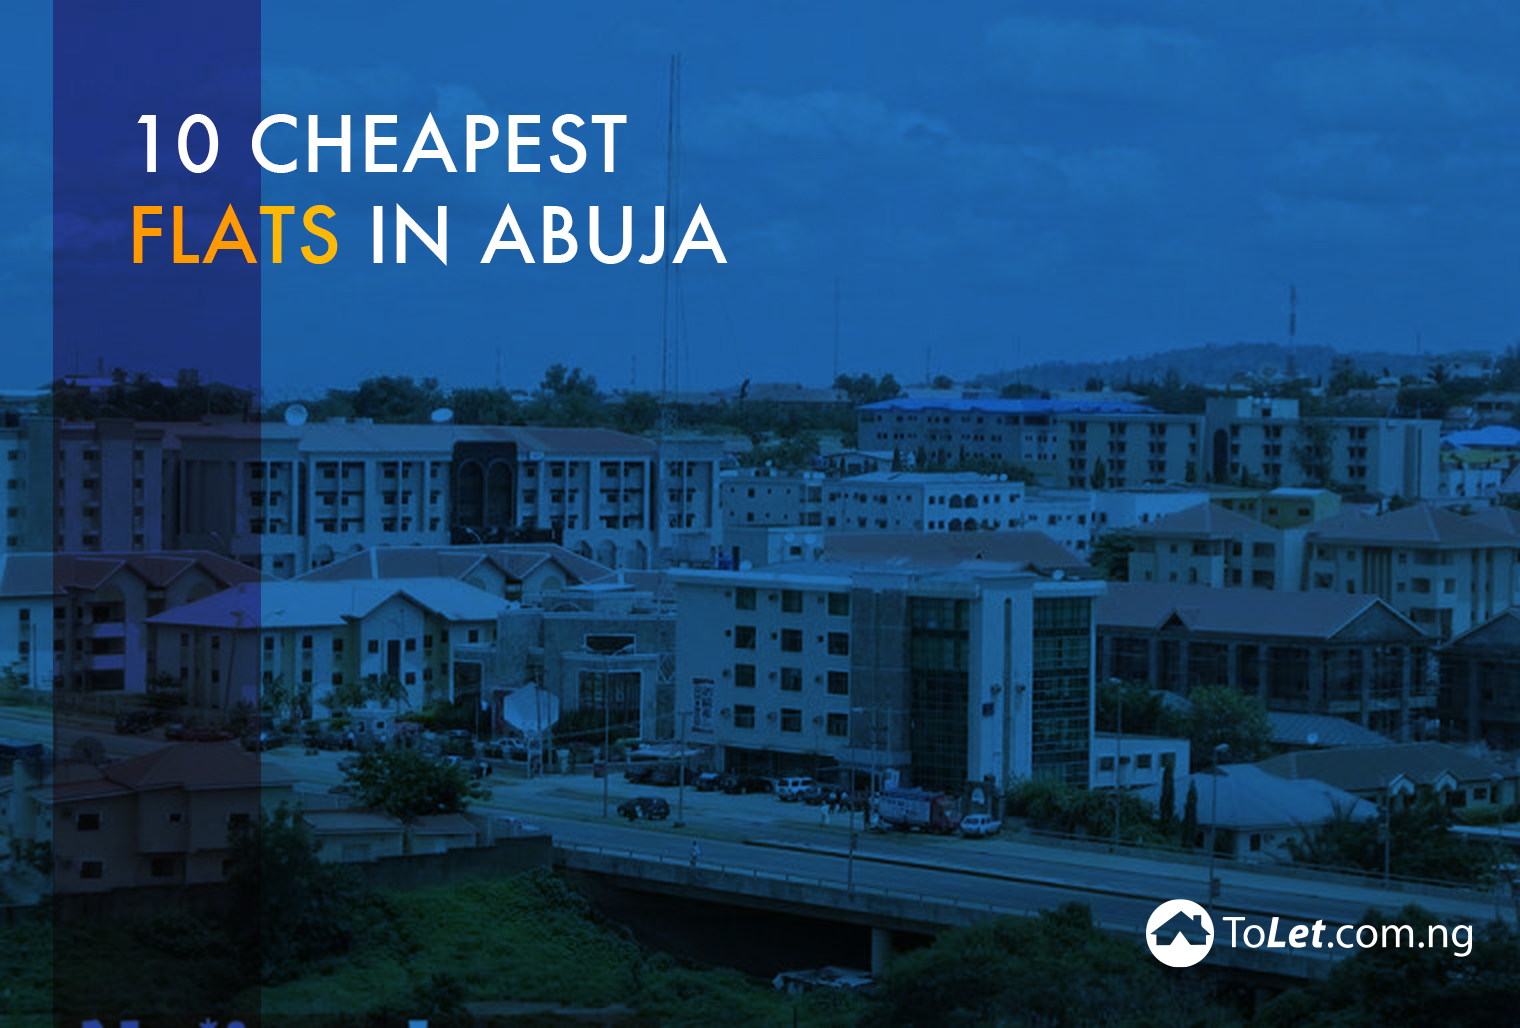 Most Affordable flats in Abuja